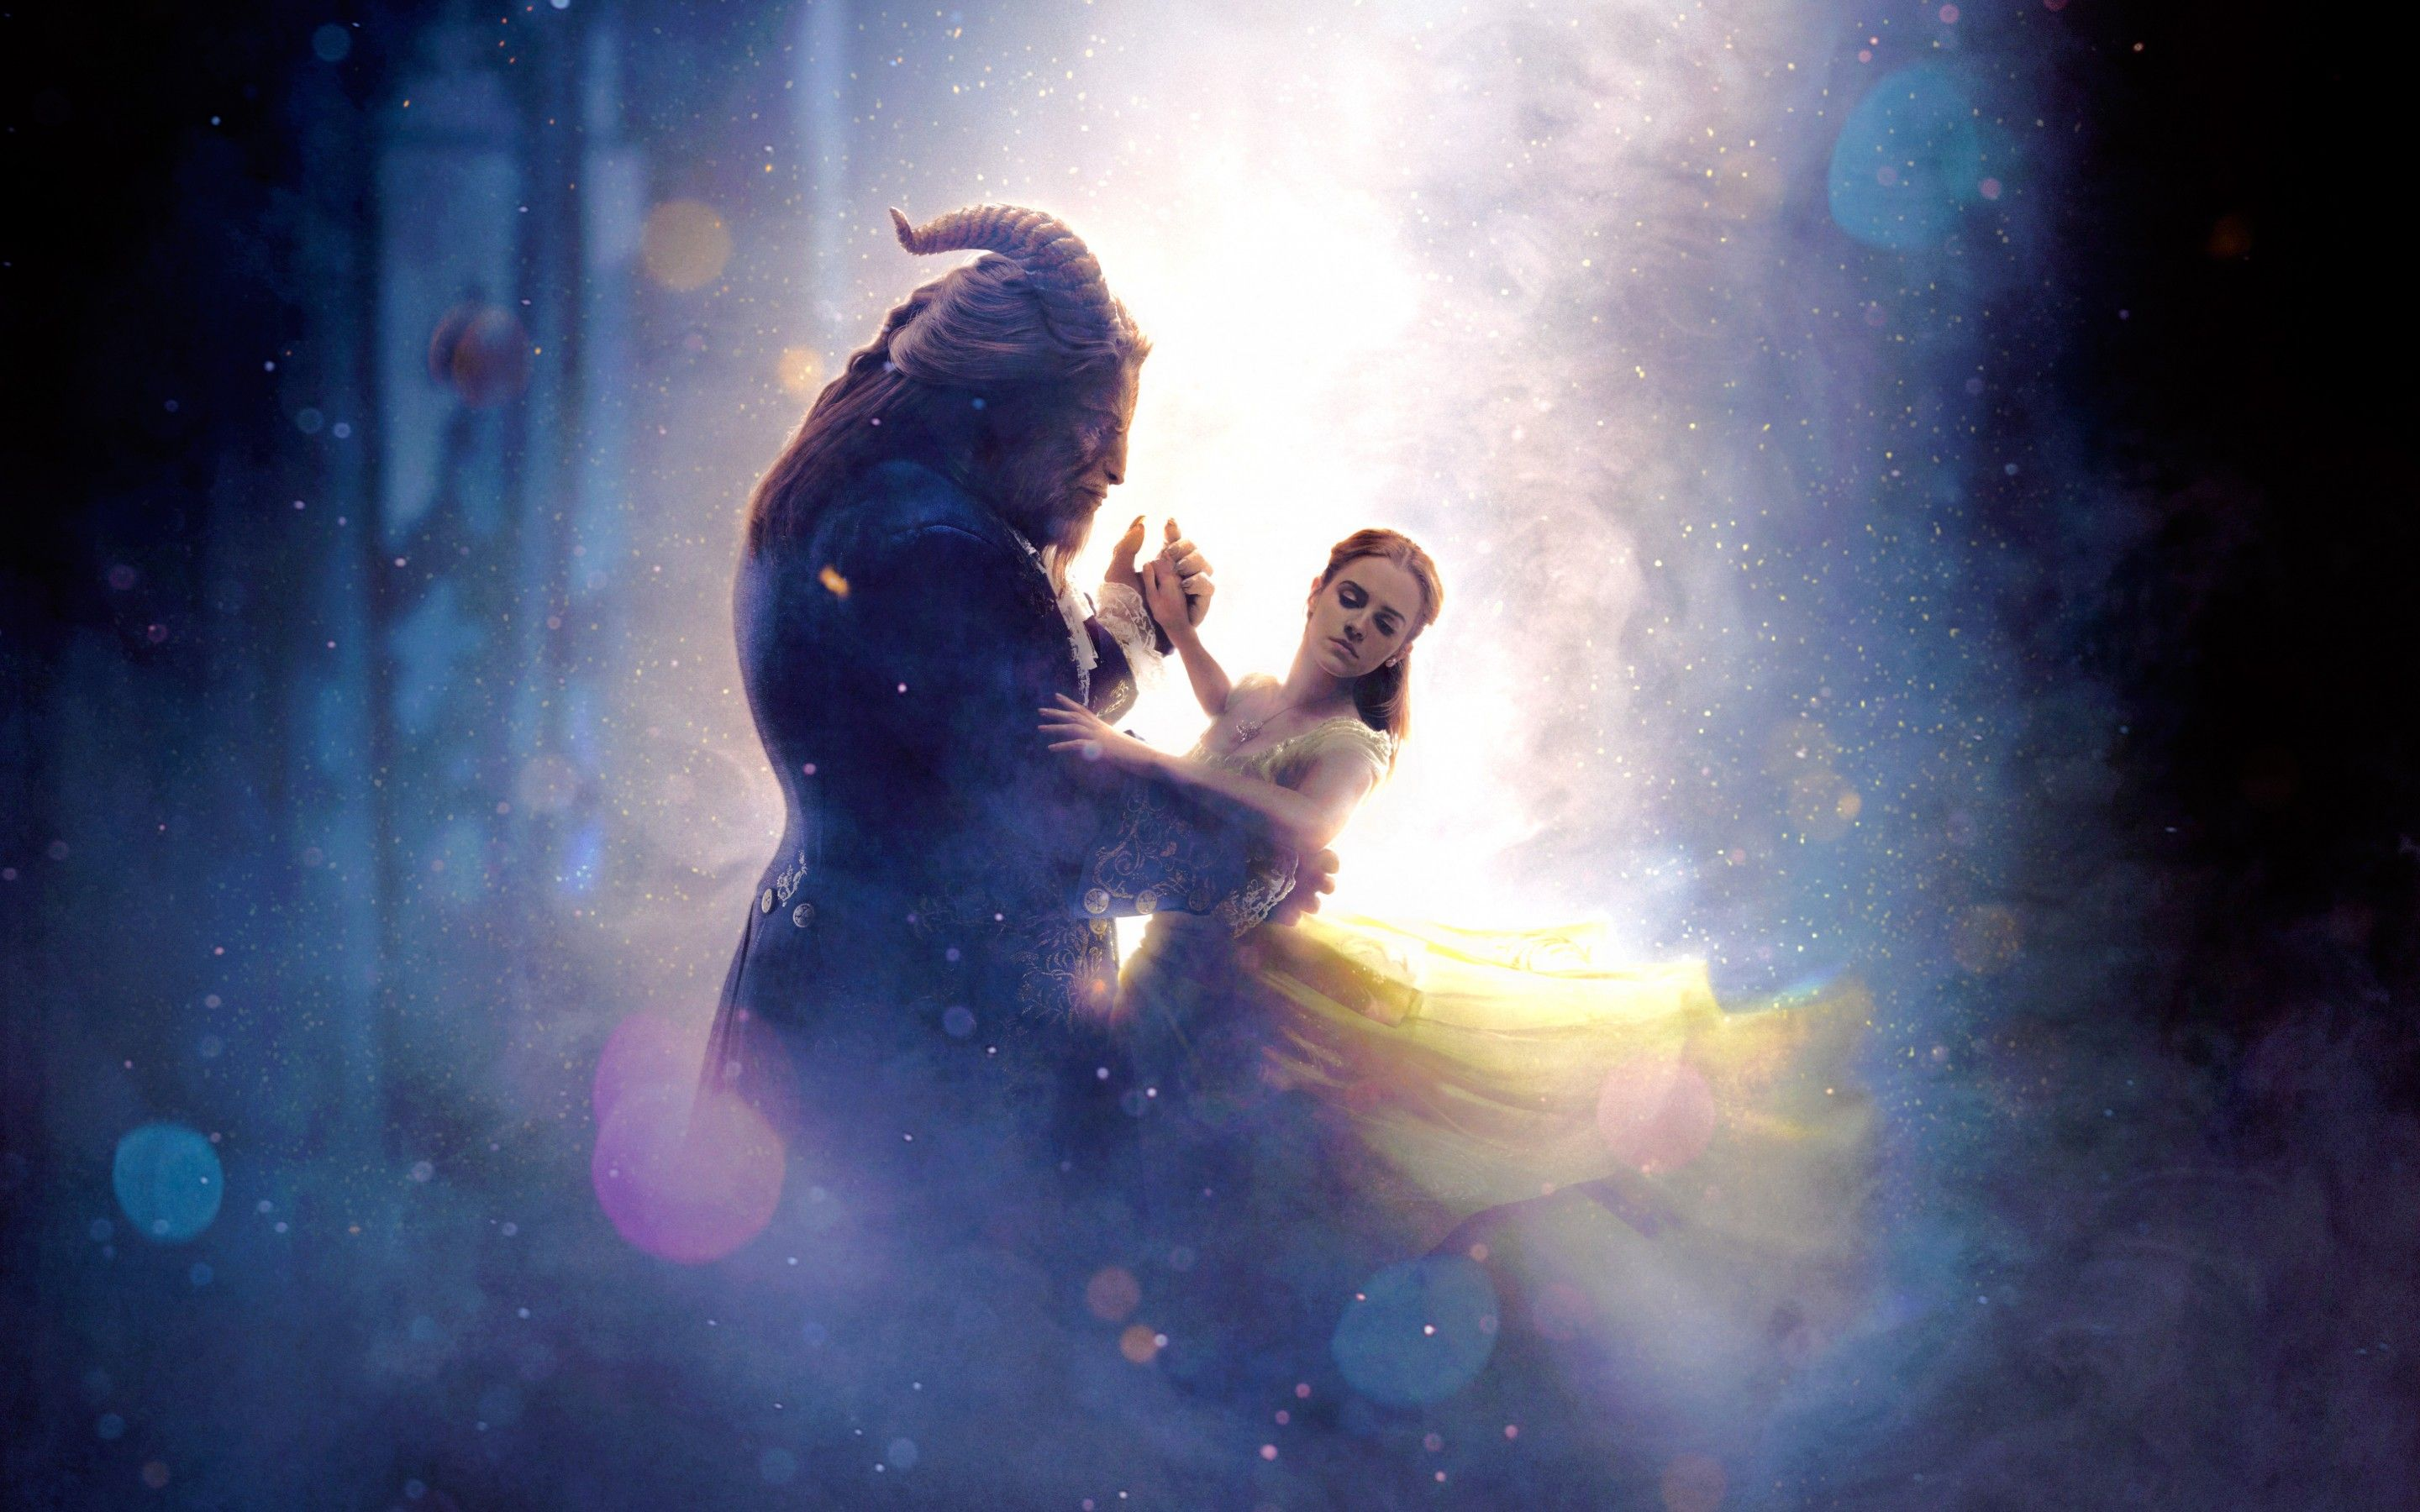 Beauty And The Beast 2017 Wallpaper Beauty And The Beast